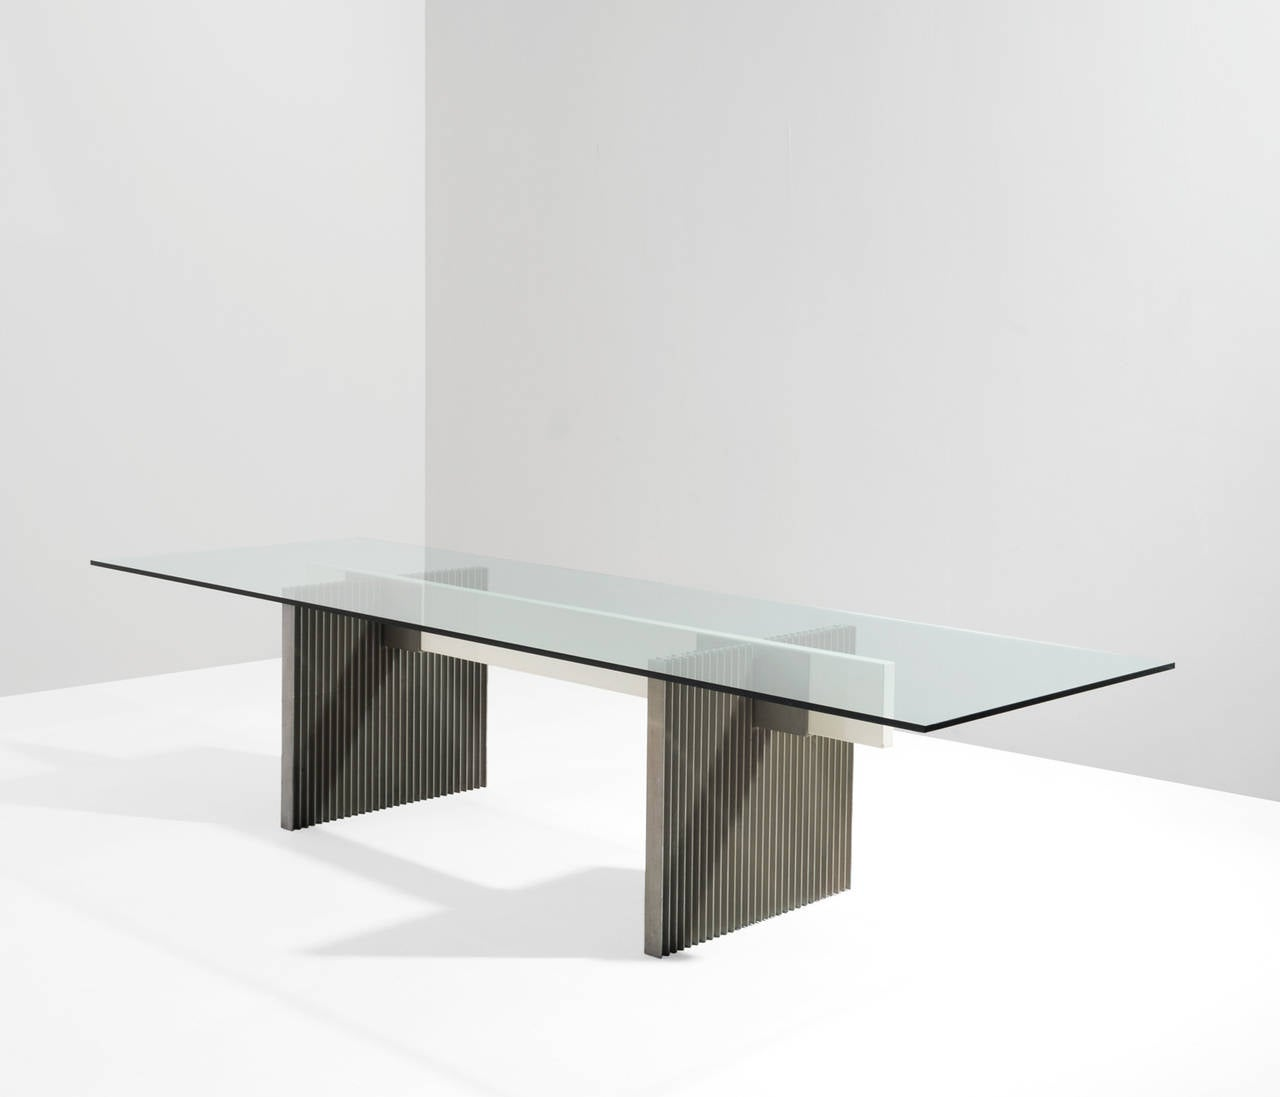 Dining Room Table Bases Metal: Large Dining / Conference Table With Glass And Metal Base